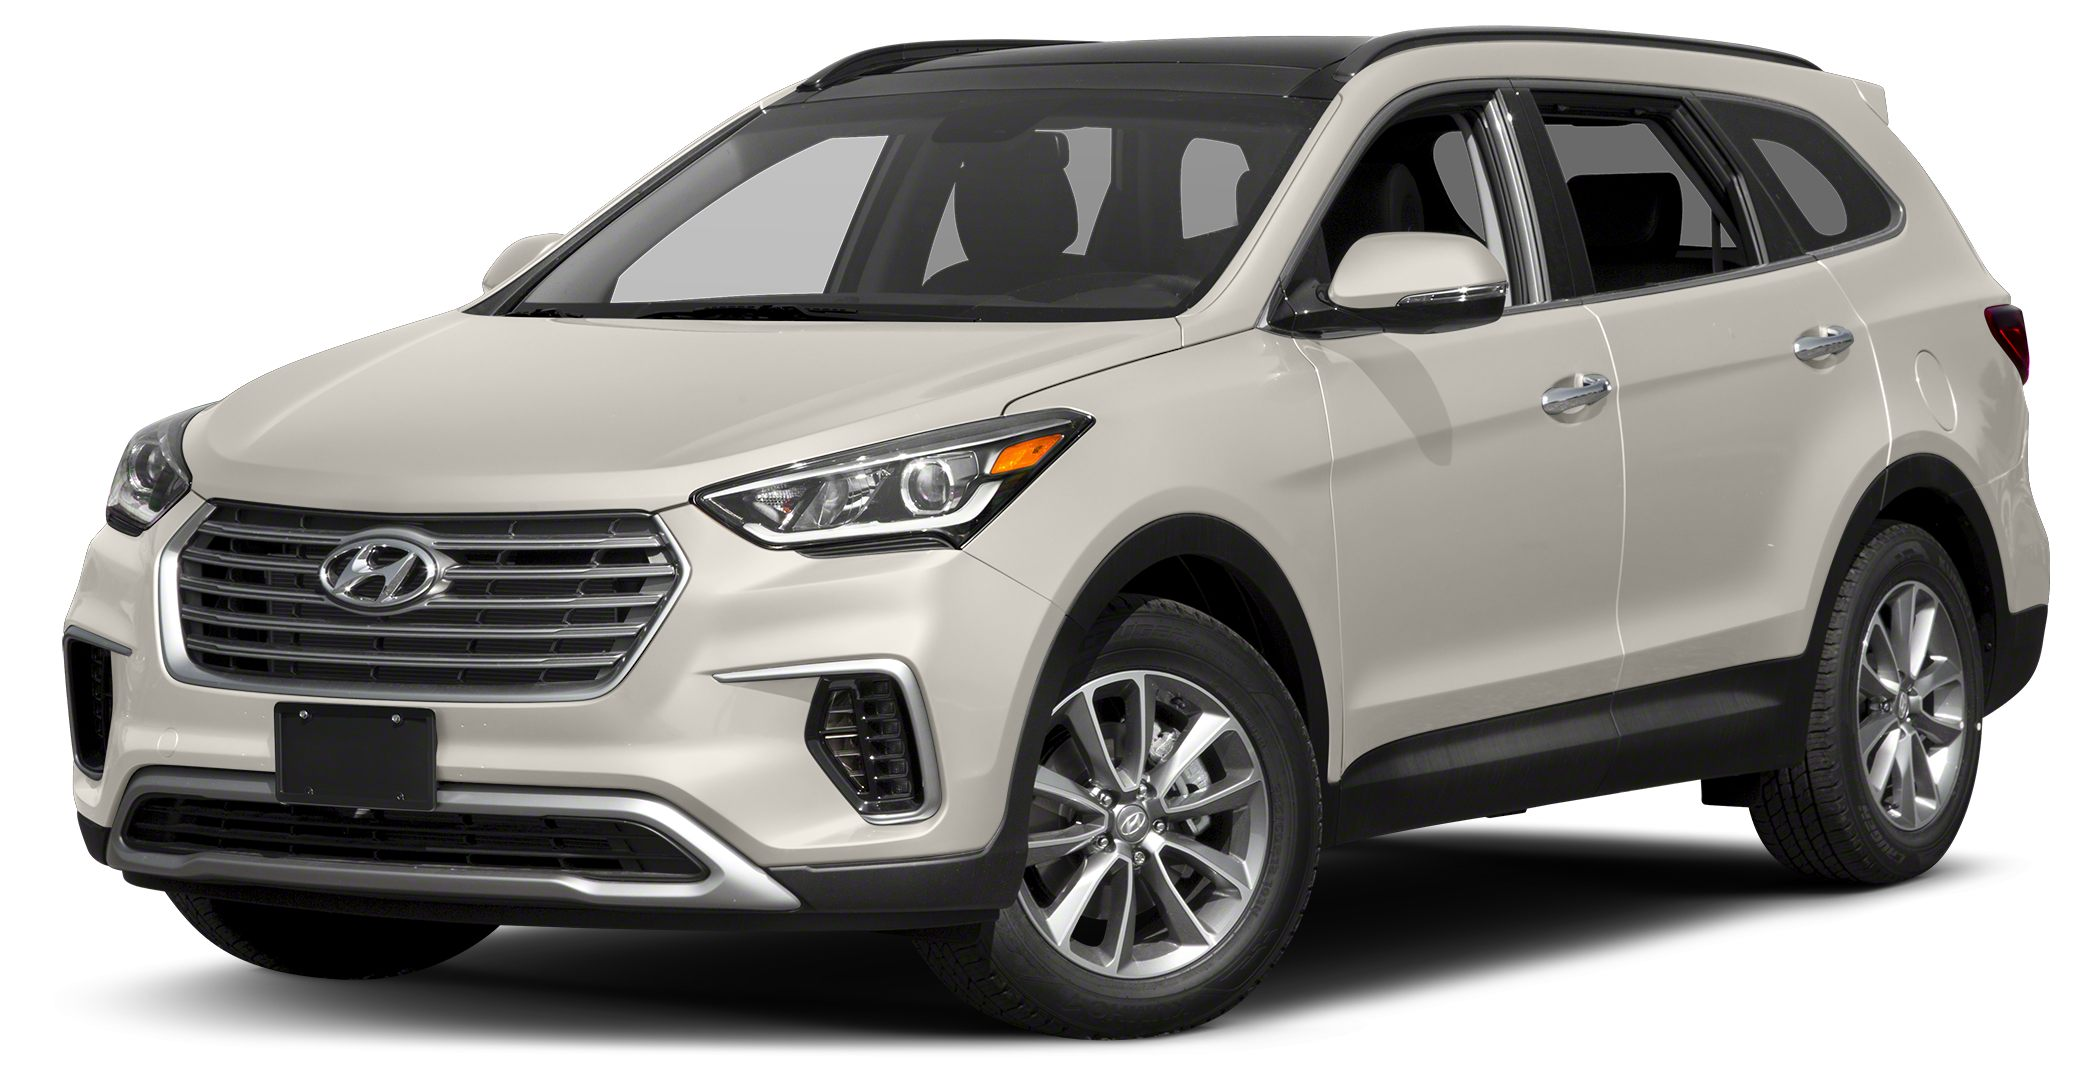 2017 Hyundai Santa Fe SE -CARFAX 1-Owner -3rd Row Seating ABS Brakes -Front Wheel Drive New Arriva